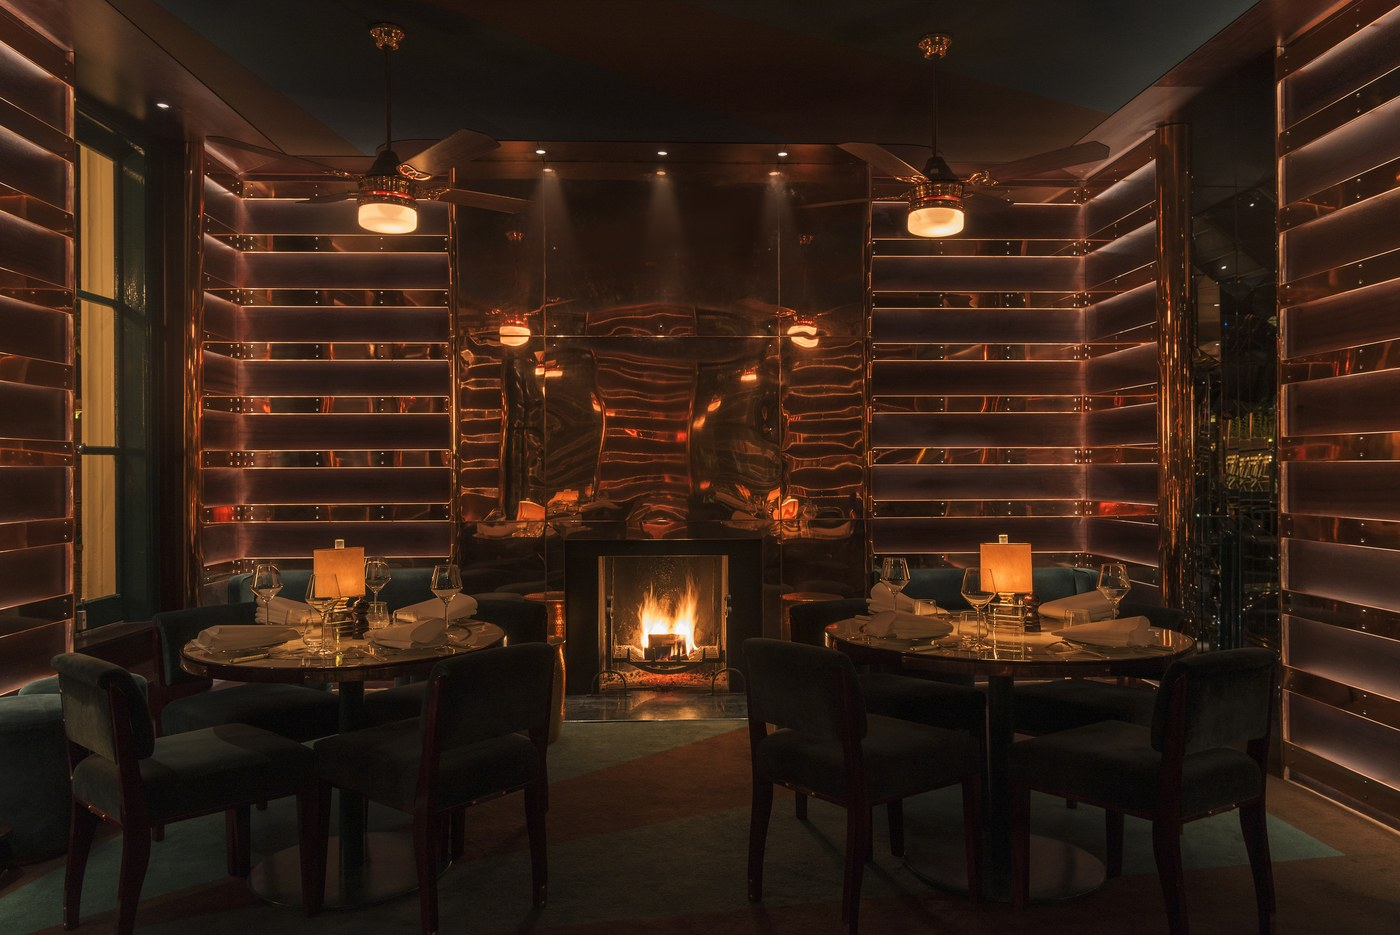 private dining room The World's Most Remarkable Private Dining Rooms 9 The Worlds Most Remarkable Private Dining Rooms